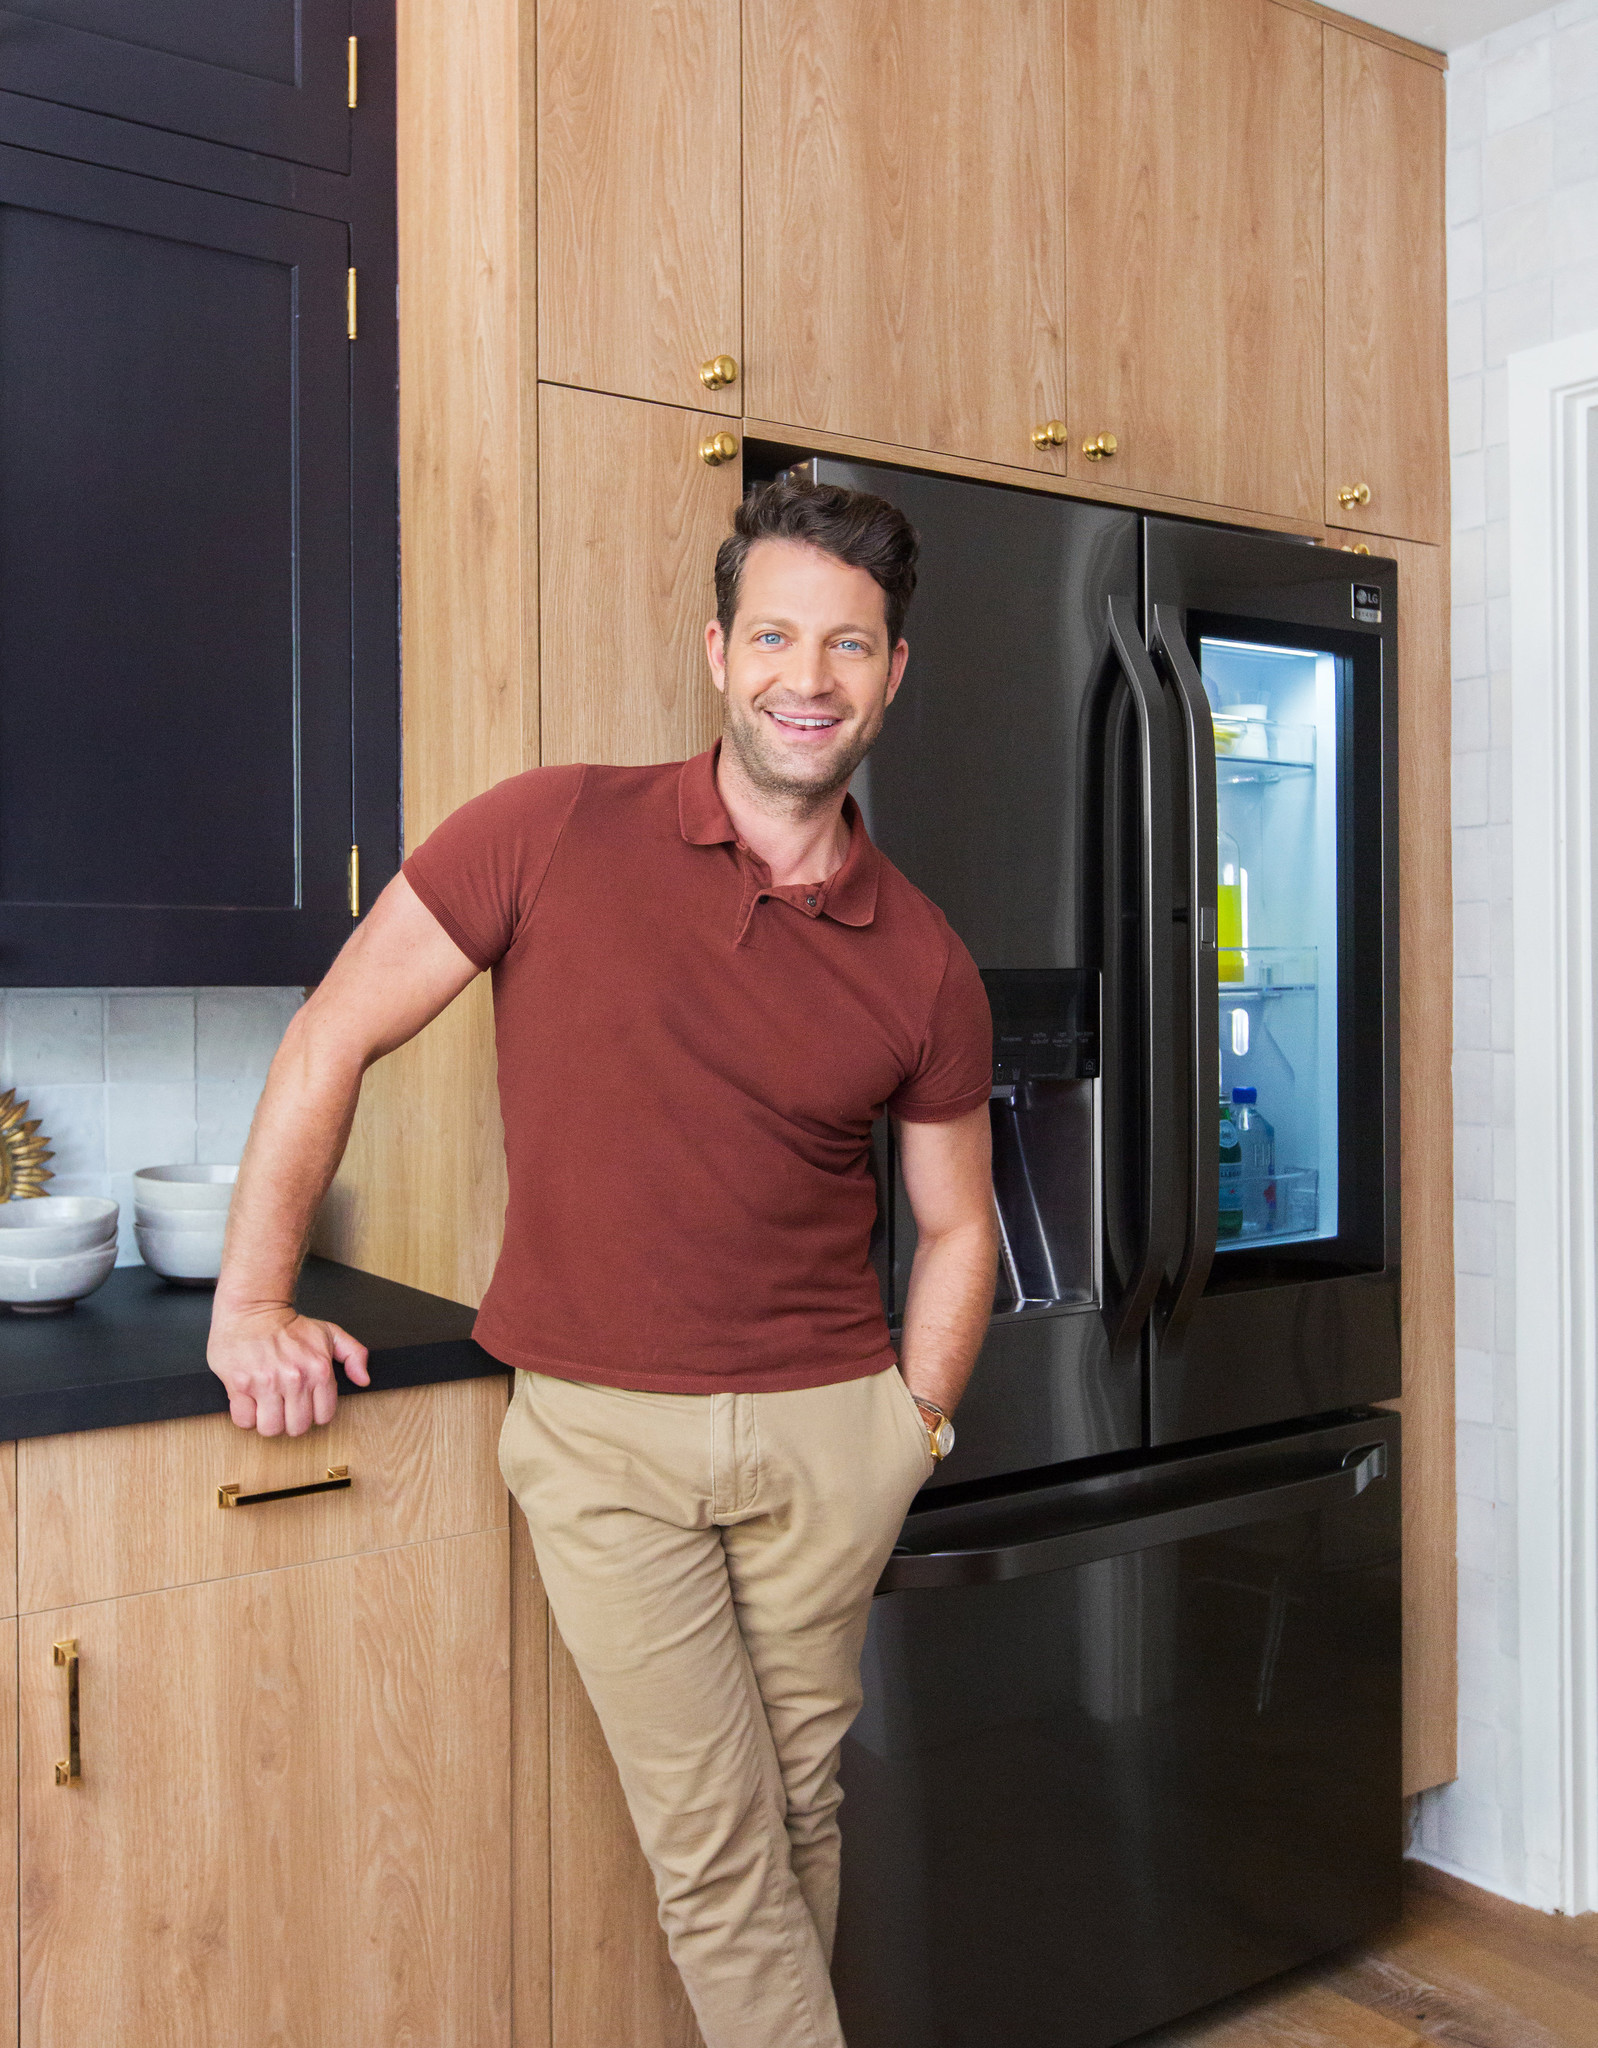 Nate Berkus, Artistic Advisor for LG Studio, in a recently renovated 80 square foot kitchen, in the